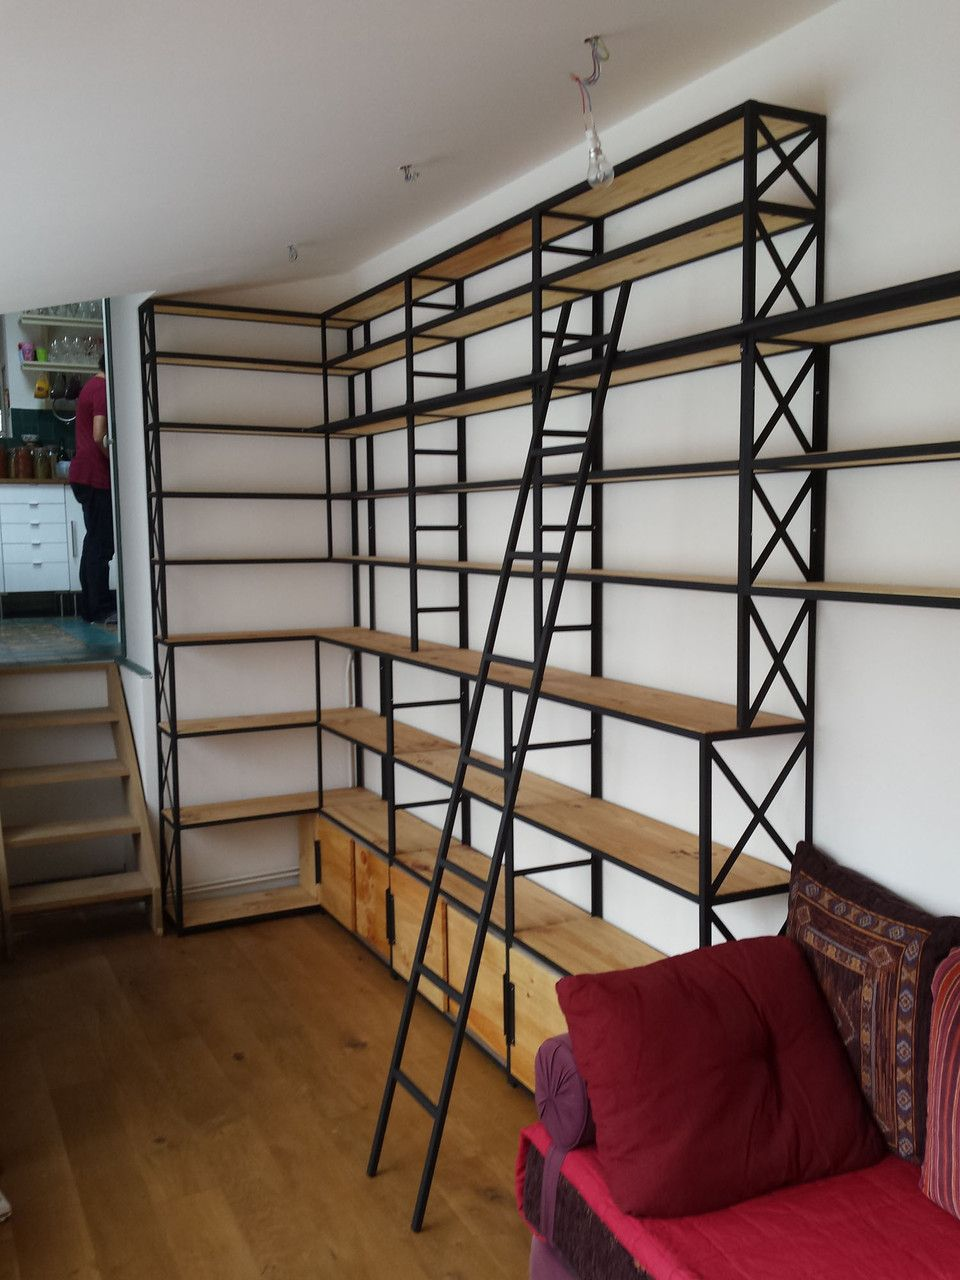 Bibliotheques De Style Industriel Style Industriel Bibliotheque Industrielle Mobilier De Salon